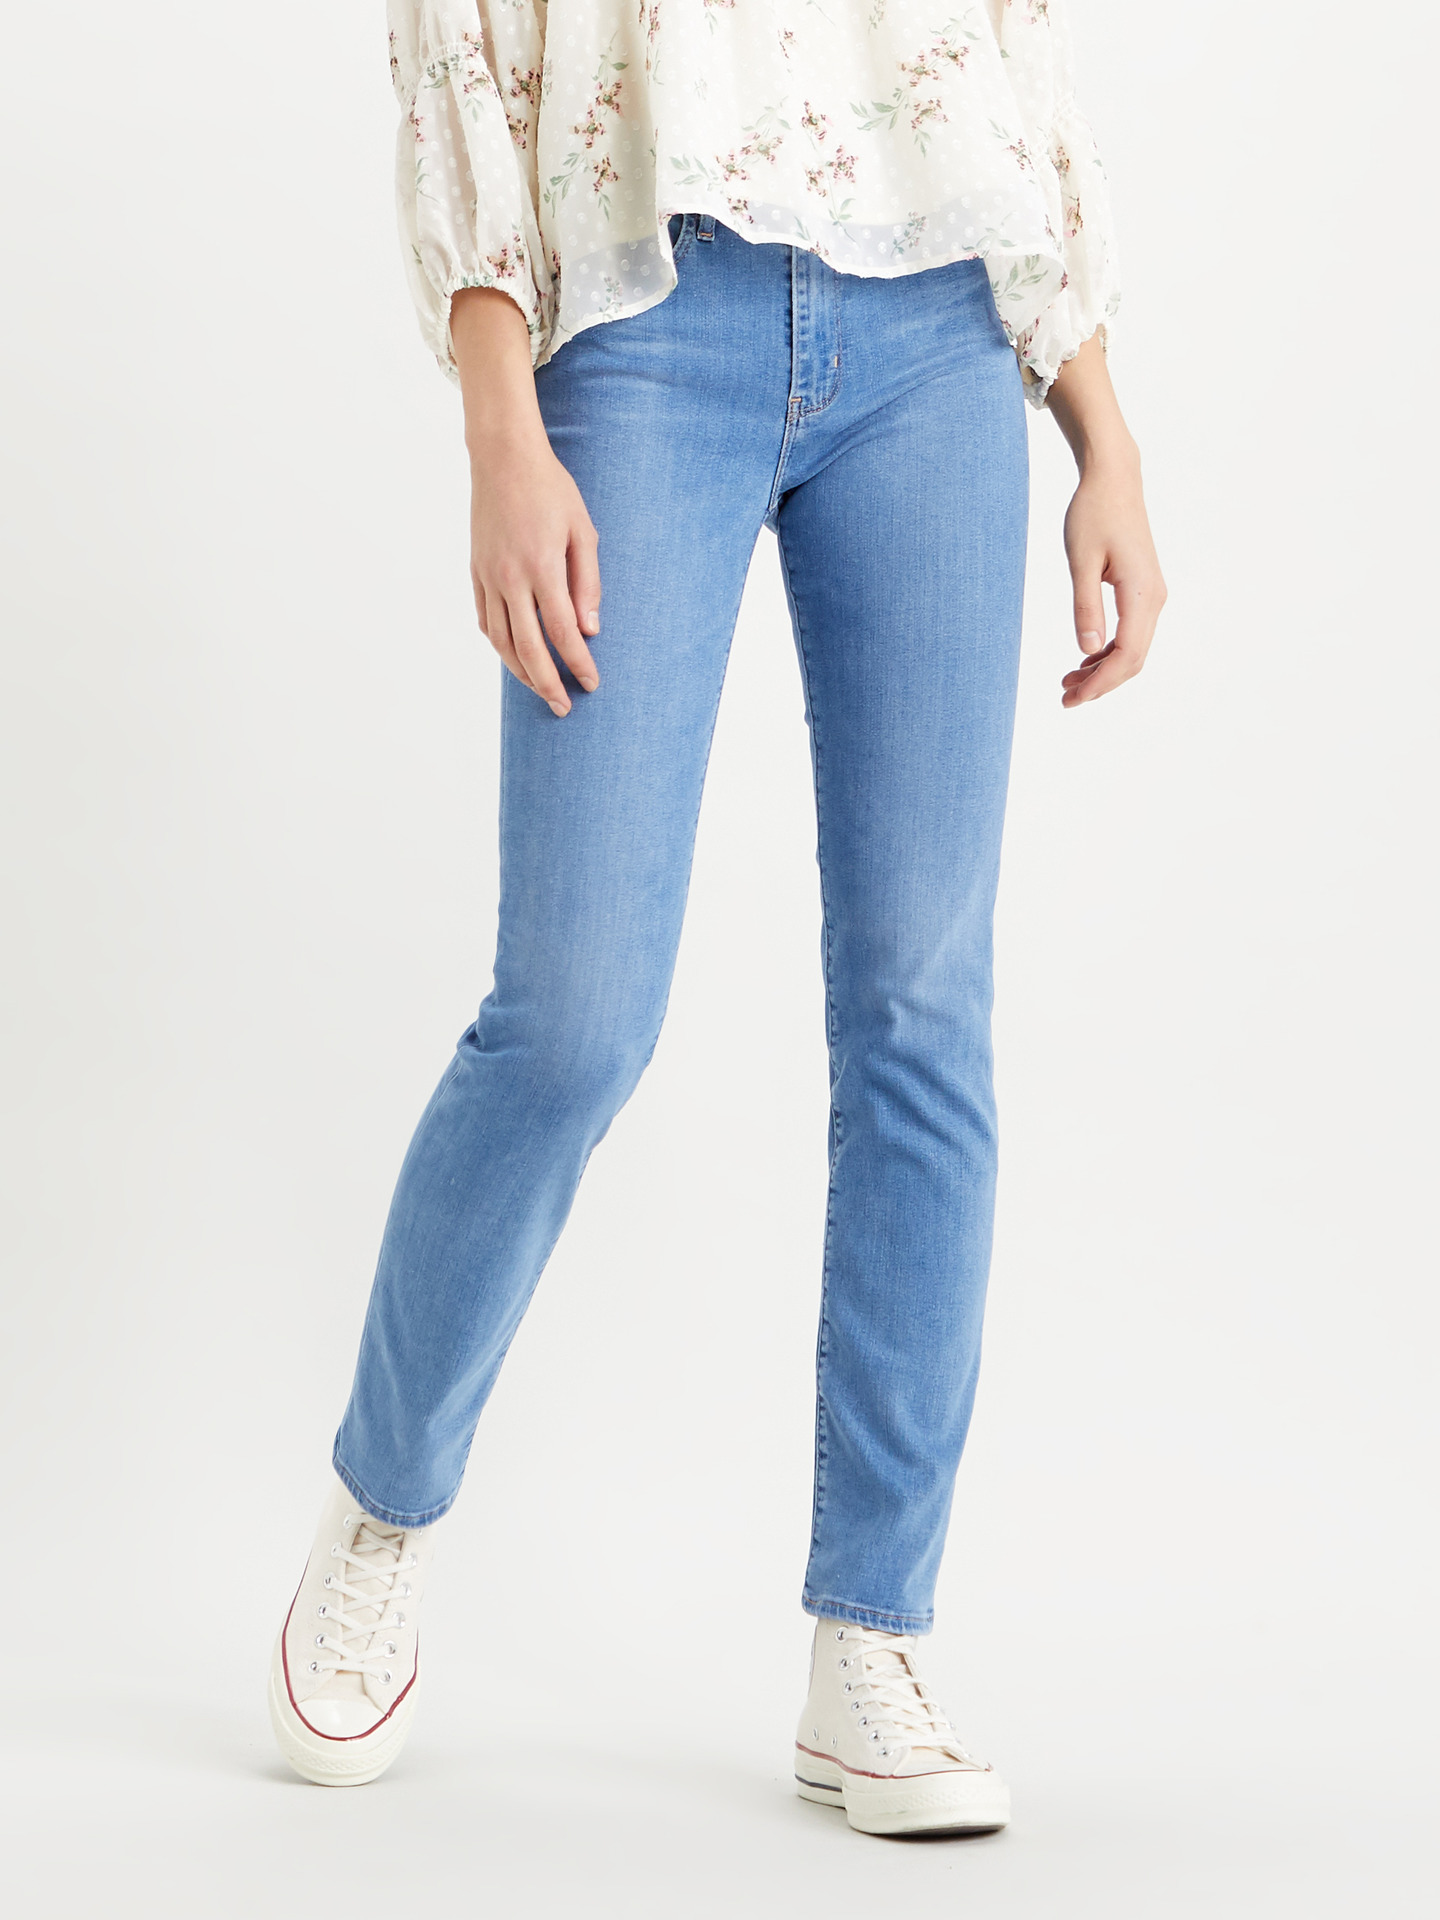 724™ High Rise Straight Jeans Levi s® Modrá